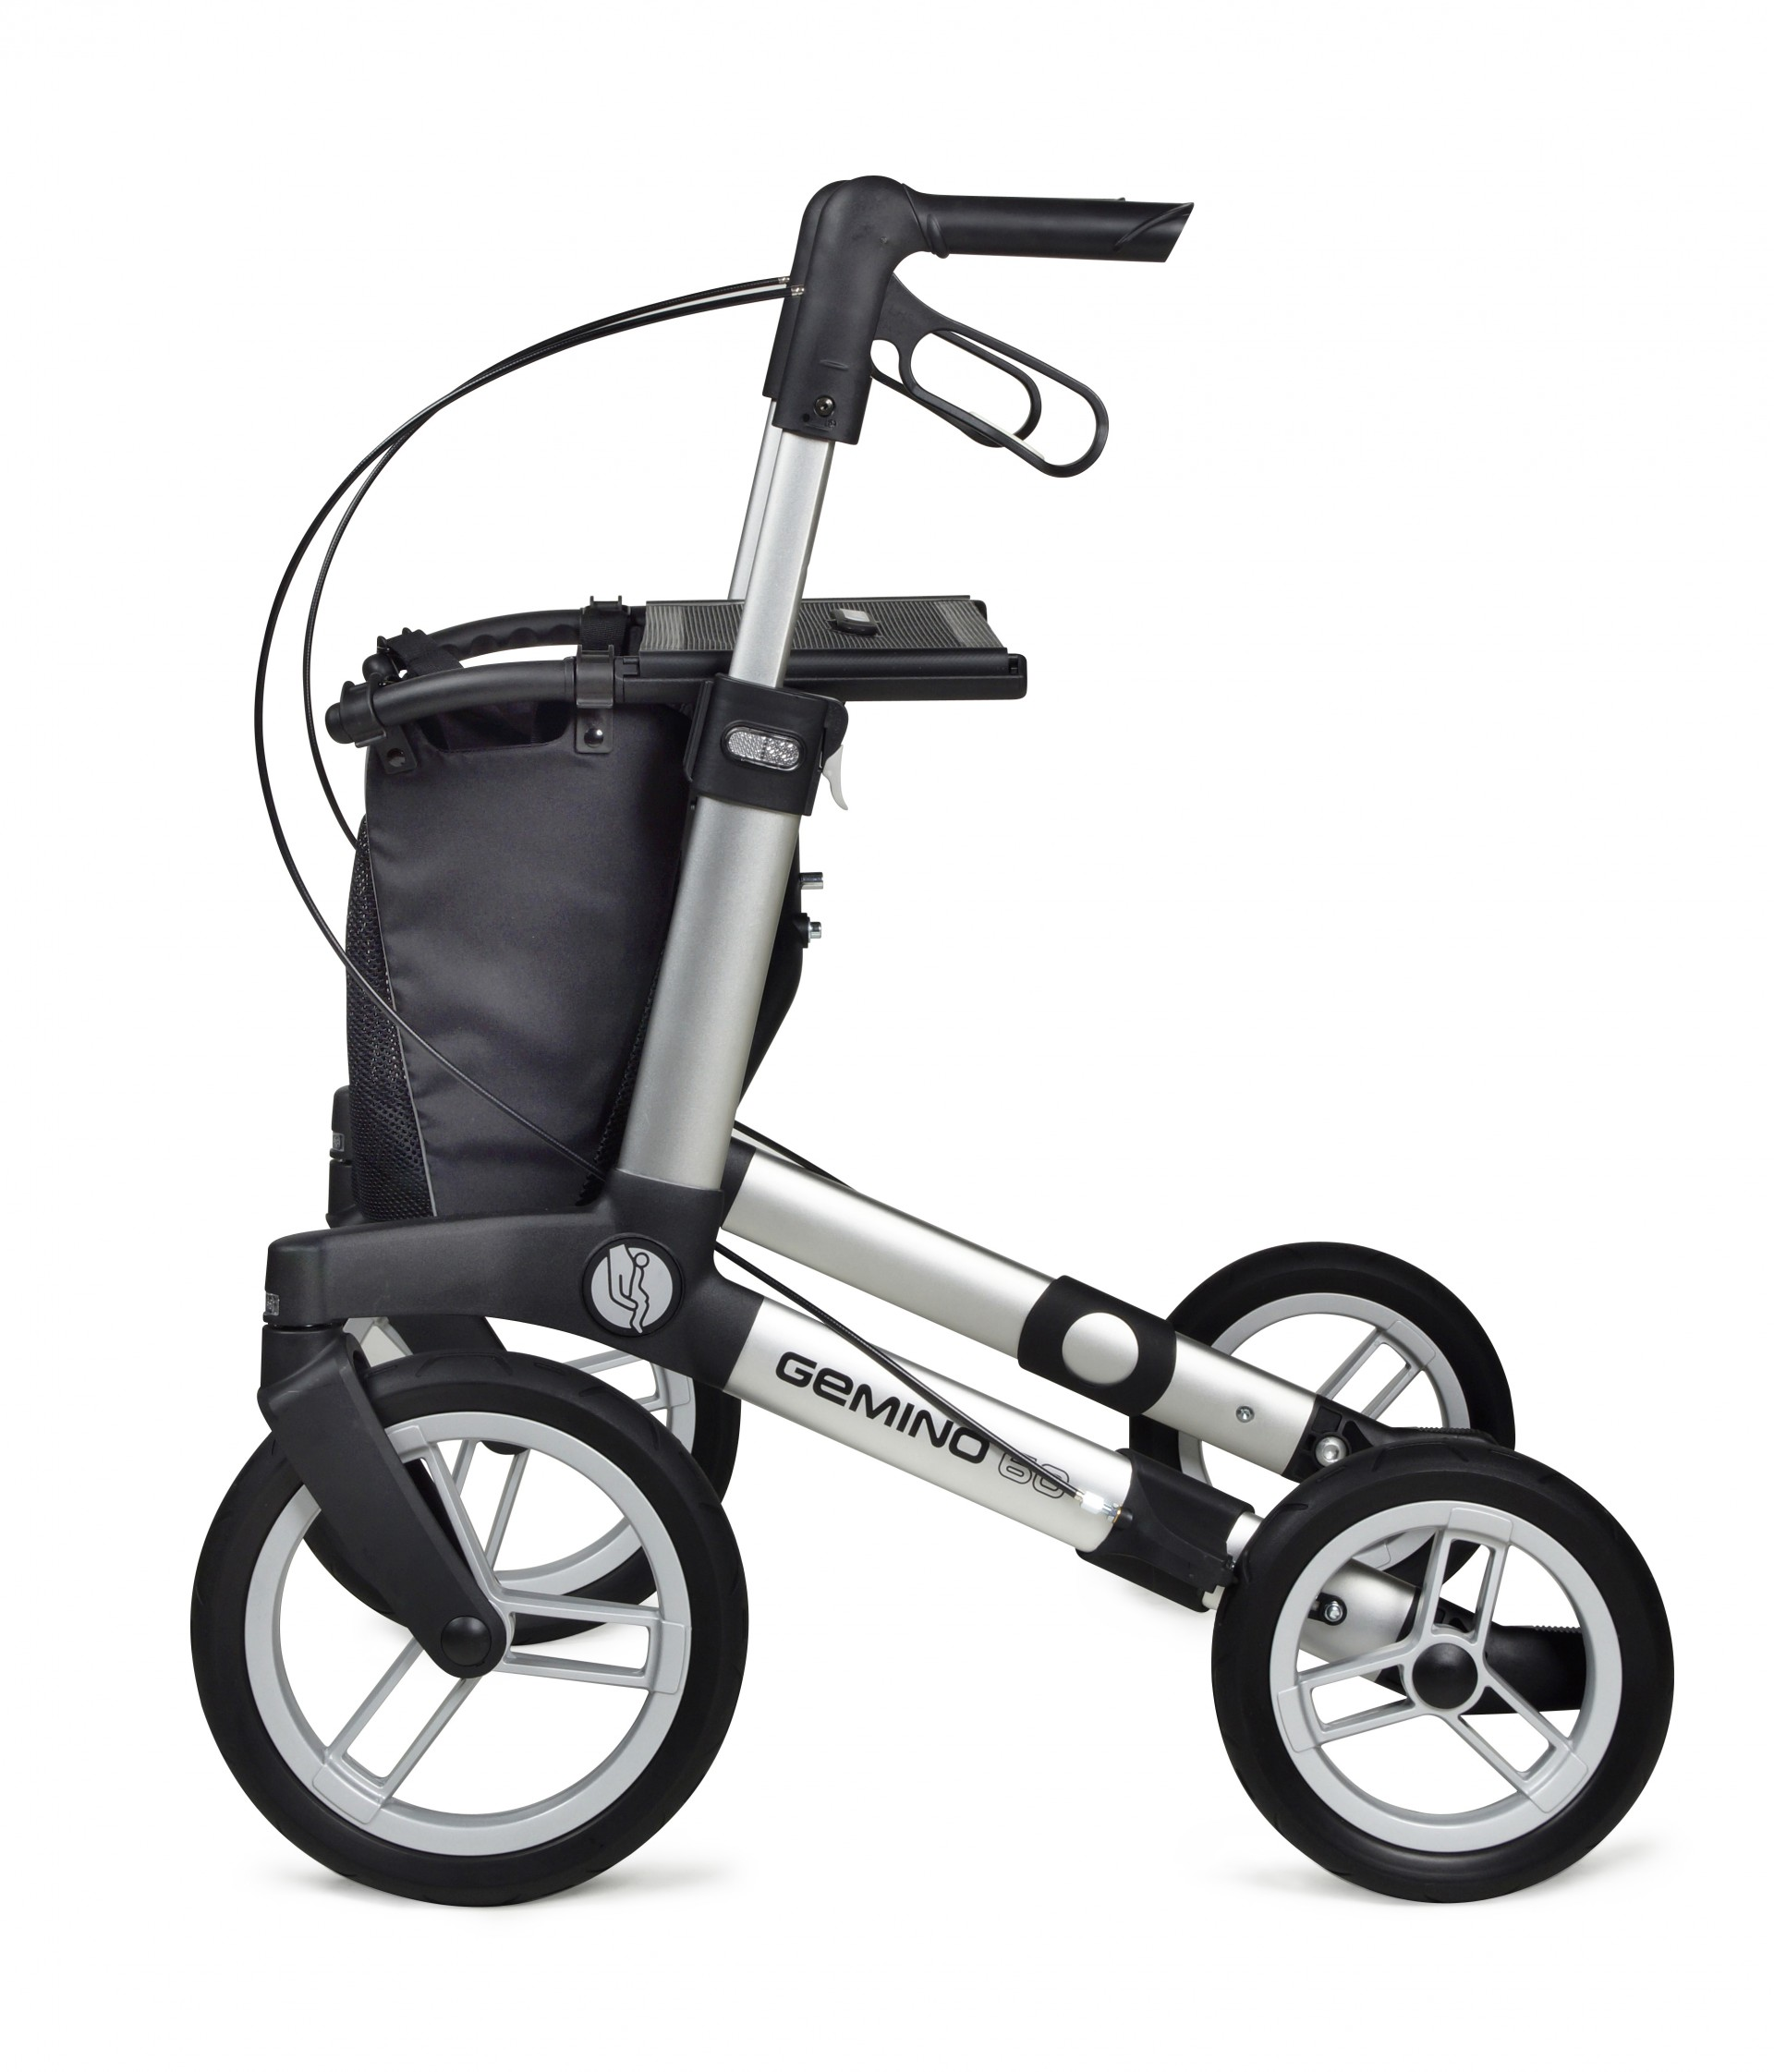 Zijaanzicht van Gemino 60 rollator van Sunrise Medical